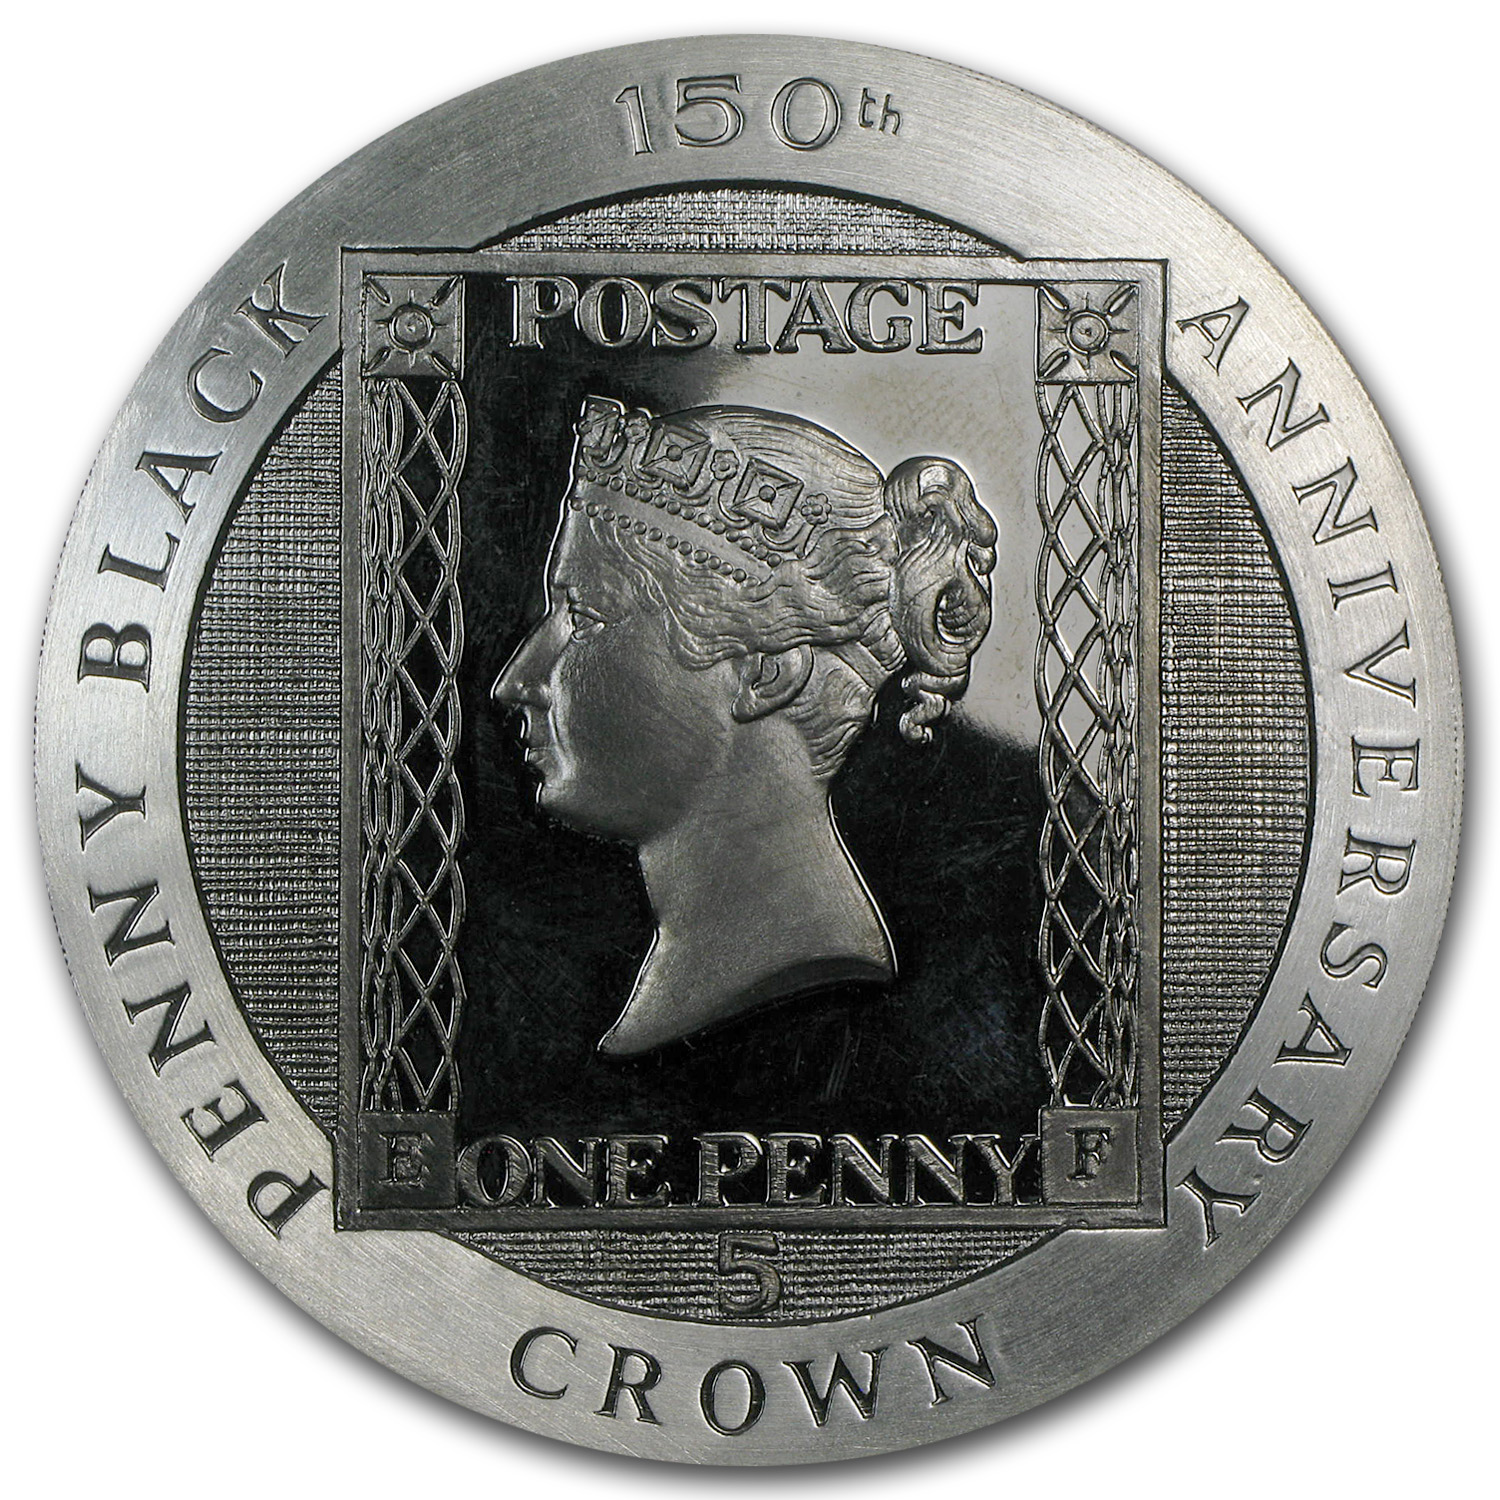 1990 Isle of Man Silver 5 Crown Penny Black